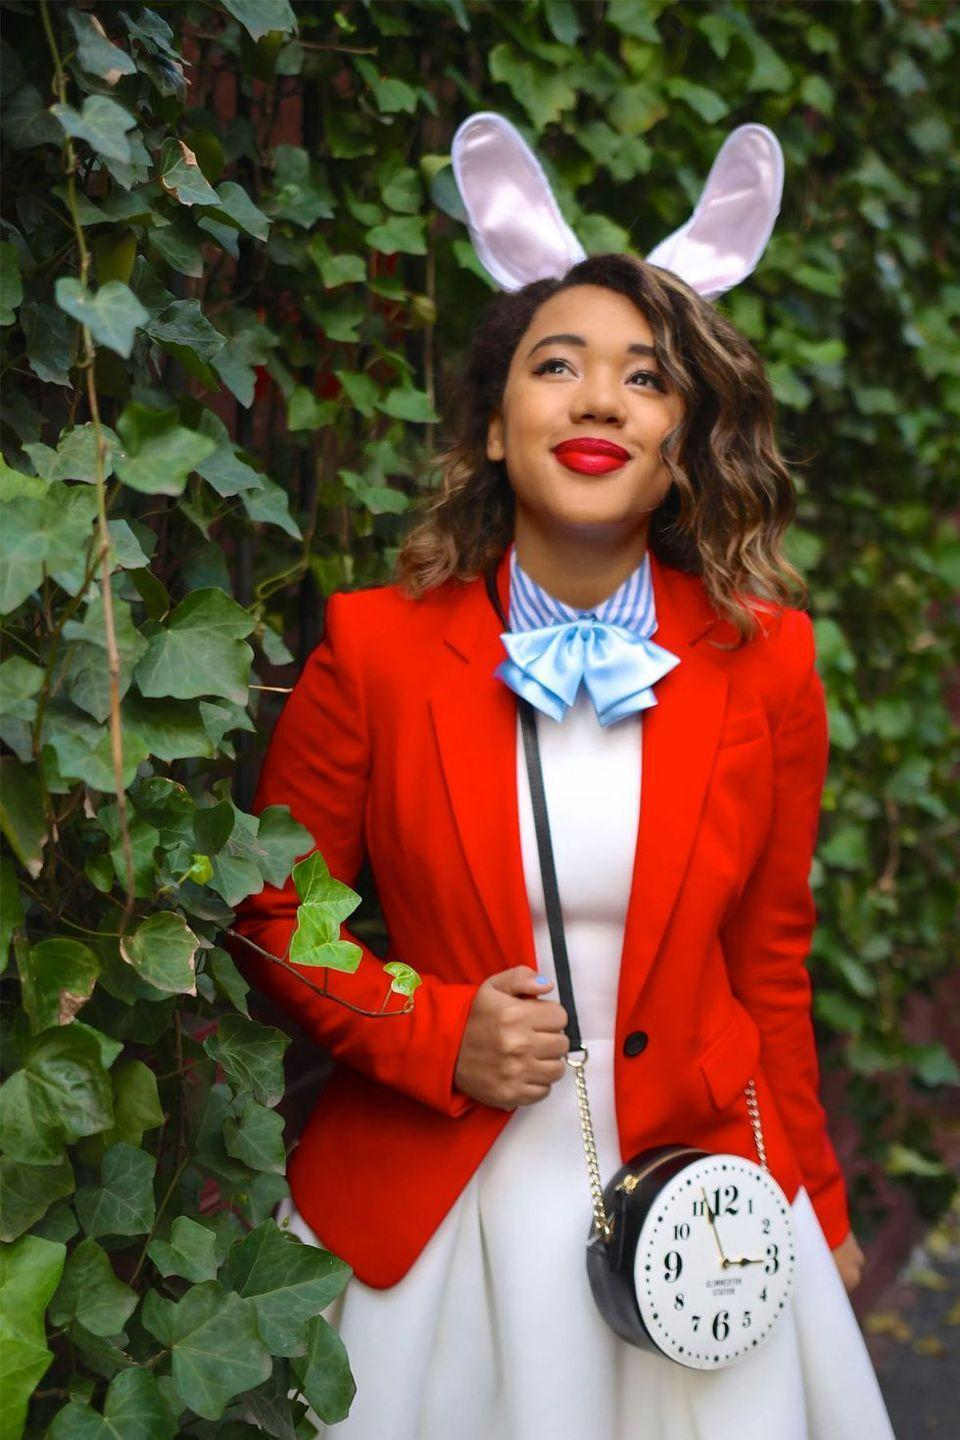 """<p>Fall down the rabbit hole and into this blogger's colorful costume tutorial. Who knows? Maybe you'll even have time to fit in a game of flamingo croquet.</p><p><strong>Get the tutorial at <a href=""""http://www.colormecourtney.com/disney-diy-2-easy-halloween-costume"""" rel=""""nofollow noopener"""" target=""""_blank"""" data-ylk=""""slk:Color Me Courtney"""" class=""""link rapid-noclick-resp"""">Color Me Courtney</a>.</strong></p><p><strong><a class=""""link rapid-noclick-resp"""" href=""""https://go.redirectingat.com?id=74968X1596630&url=https%3A%2F%2Fwww.walmart.com%2Fsearch%2F%3Fquery%3Dcross%2Bbody%2Bbags&sref=https%3A%2F%2Fwww.thepioneerwoman.com%2Fholidays-celebrations%2Fg37014285%2Fbook-character-costumes%2F"""" rel=""""nofollow noopener"""" target=""""_blank"""" data-ylk=""""slk:SHOP CROSS-BODY BAGS"""">SHOP CROSS-BODY BAGS</a></strong></p>"""